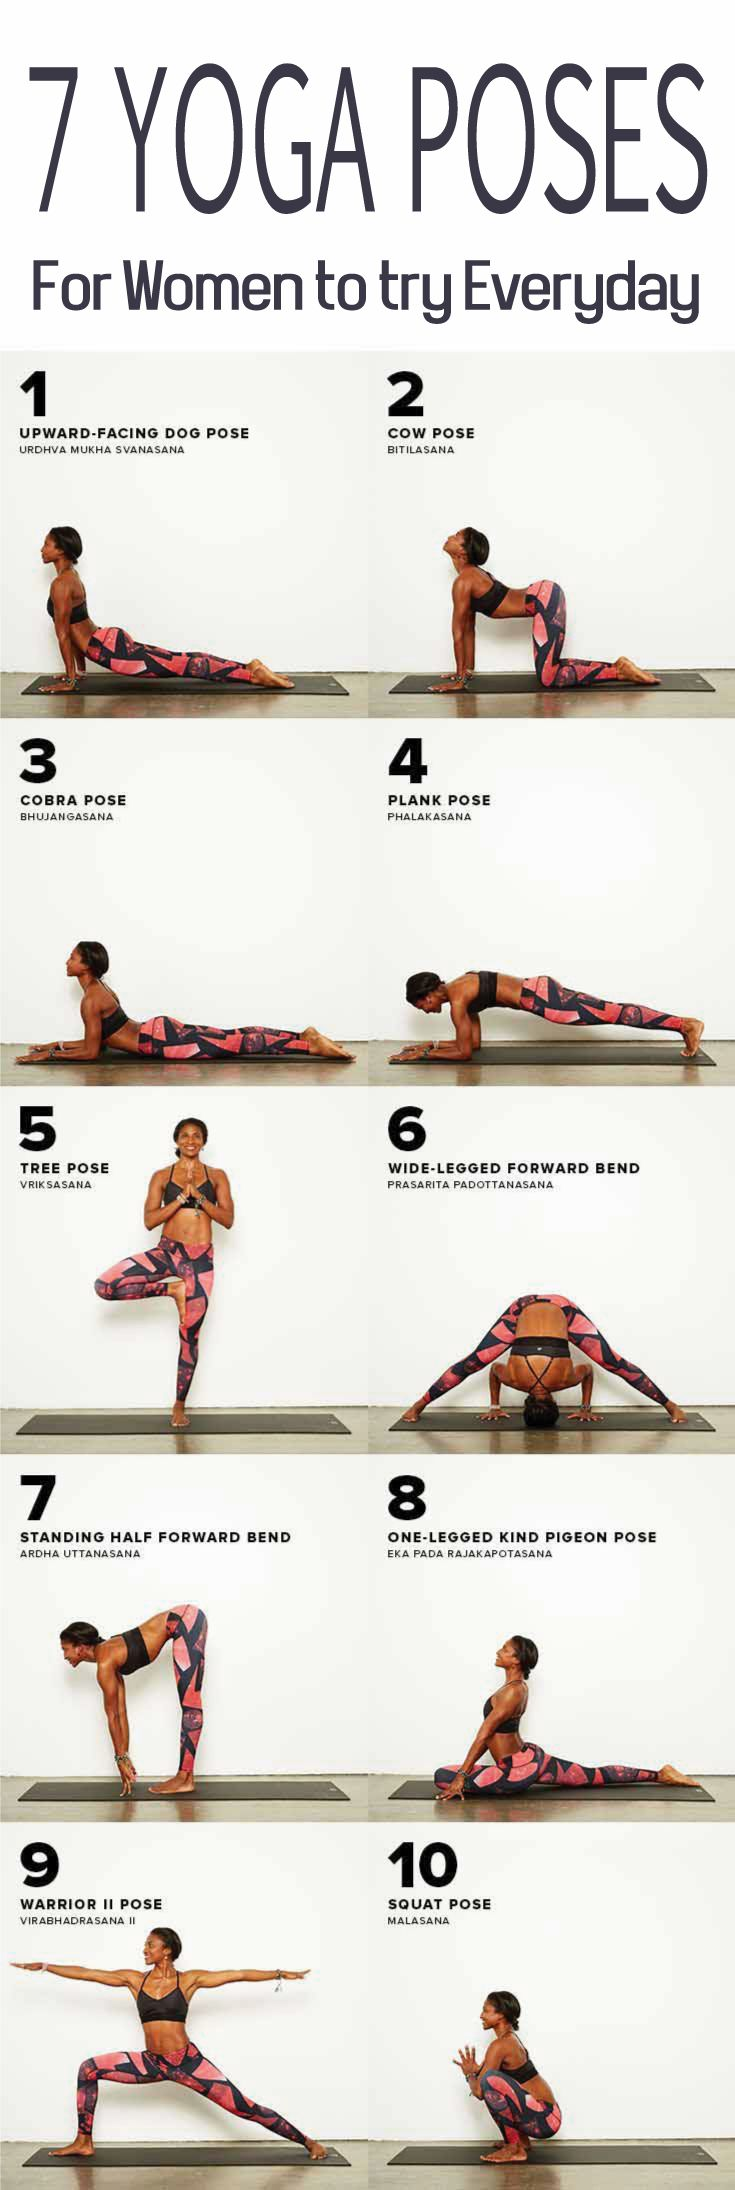 If you are searching for some specific poses as your daily routine, look no further. The following yoga poses are highly recommended for the women to practice every day. They deal with creating pleasure and tuning special organs of the boy. Follow this article of 7 Yoga Poses for Women to try Everyday | Yoga Benefits Women's Health. click to find out more! #skinnygirlblog #yogainspiration #YogaPosesforWomen #YogaPoses #yogaforbeginners